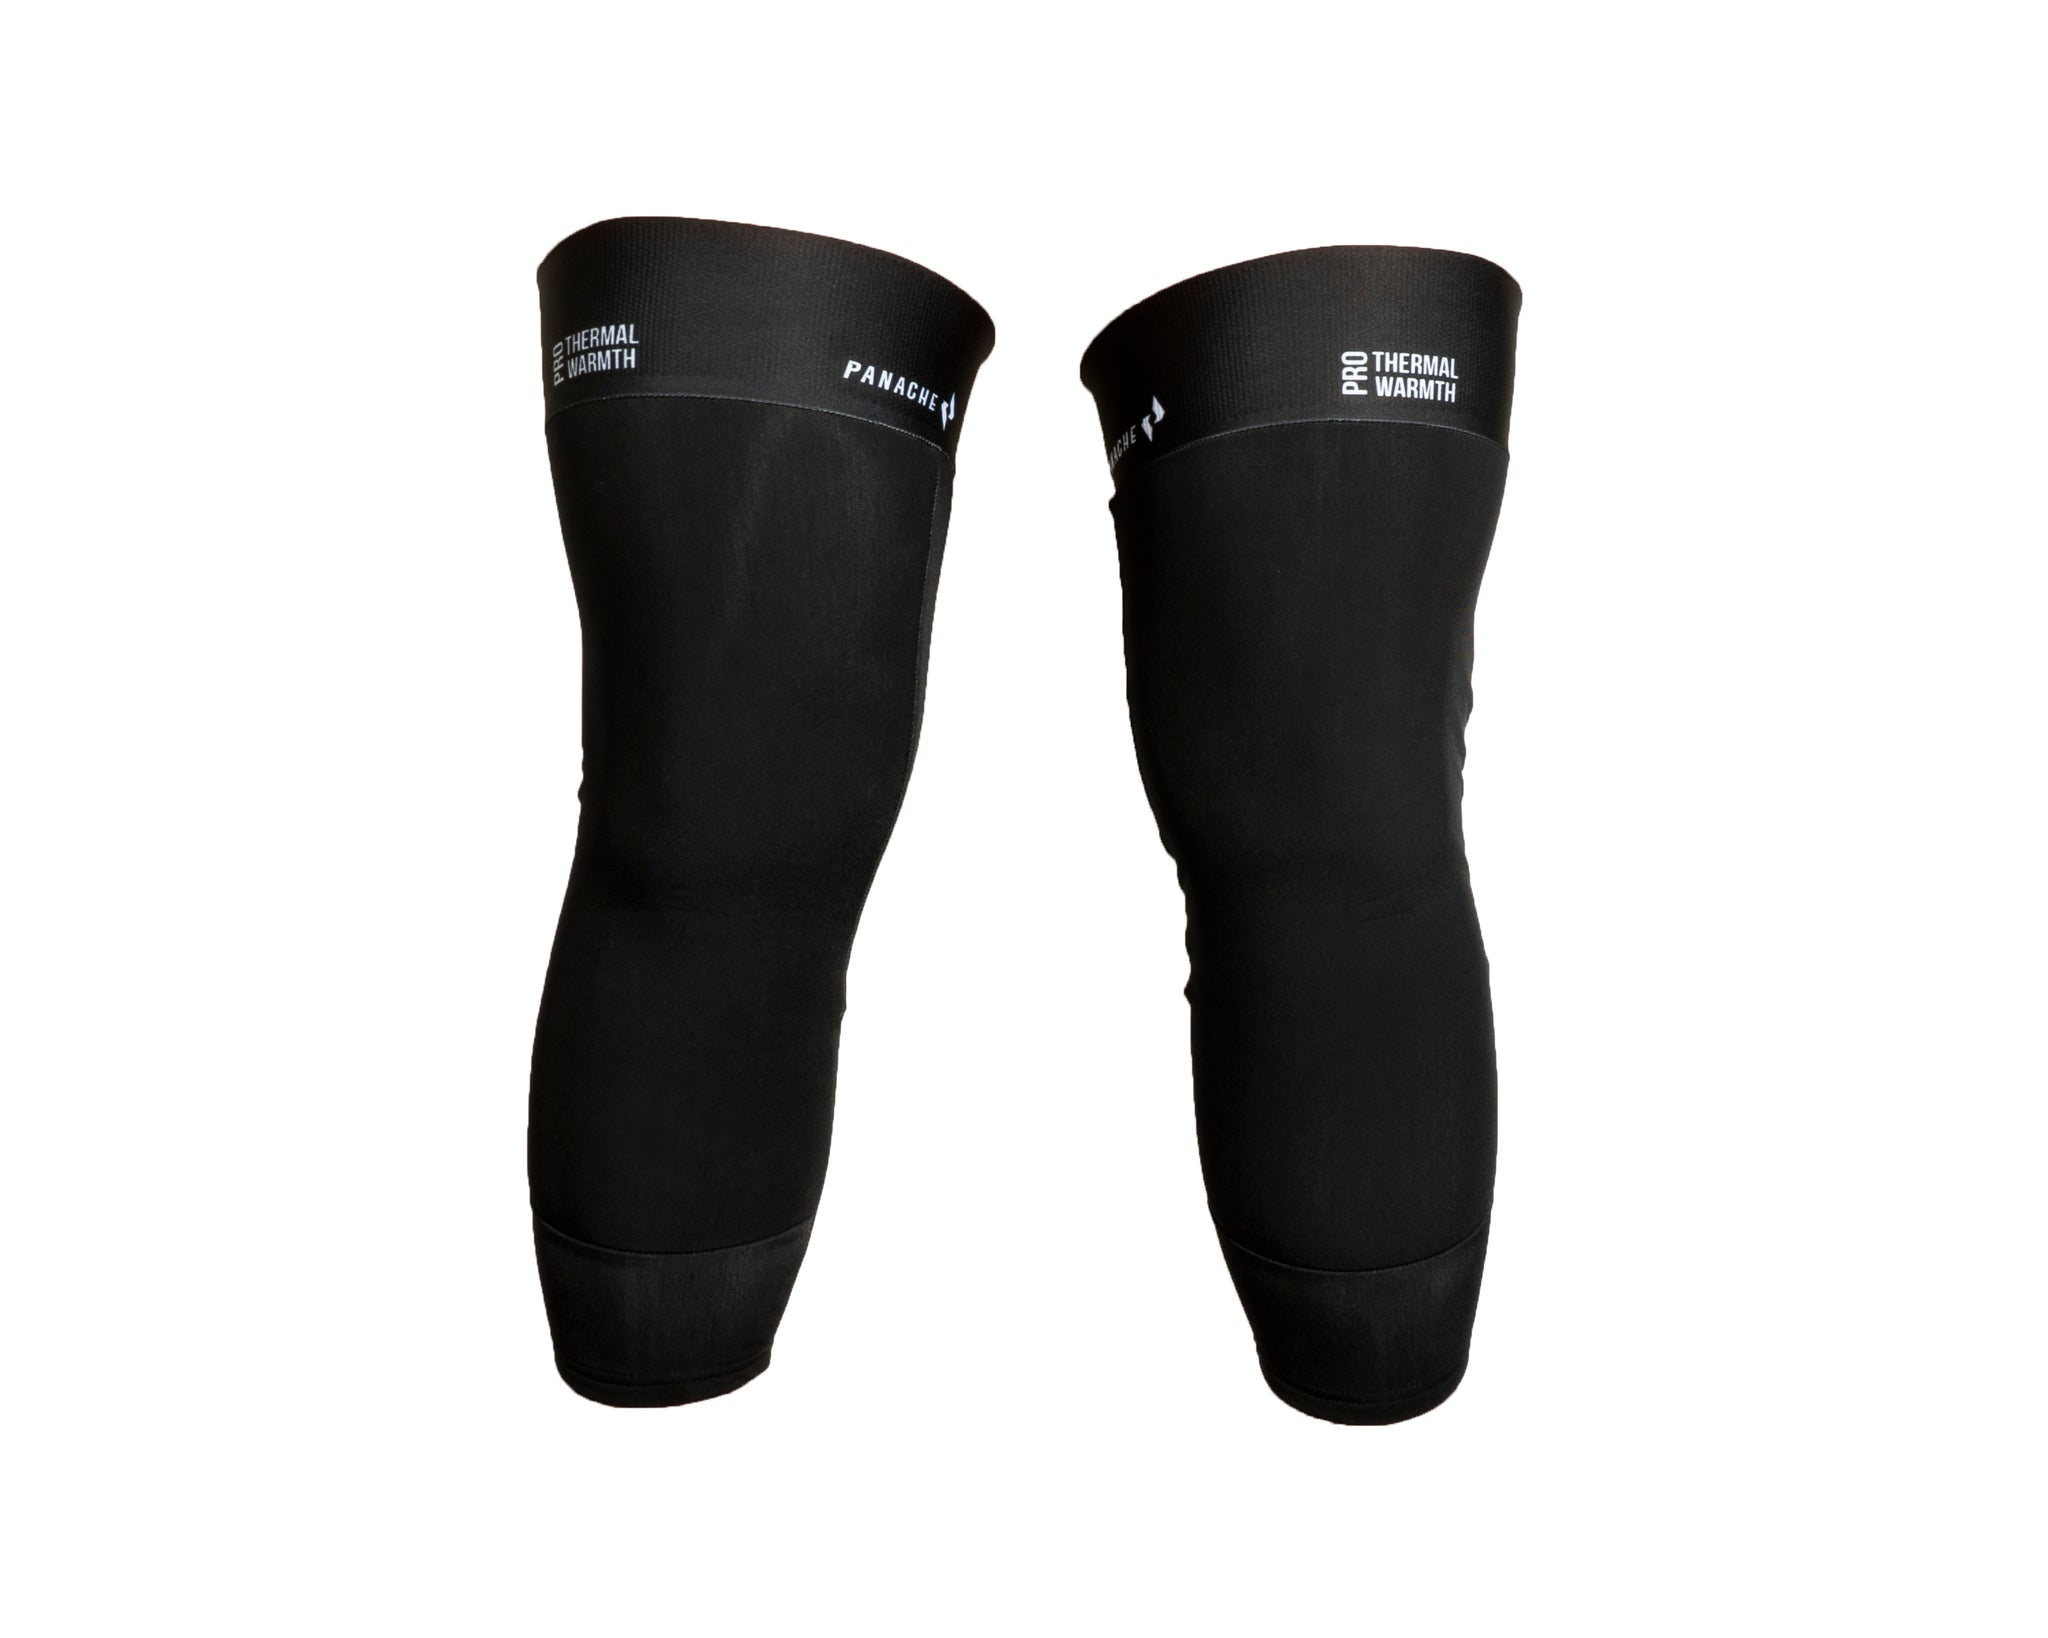 Pro Issue Knee Warmer